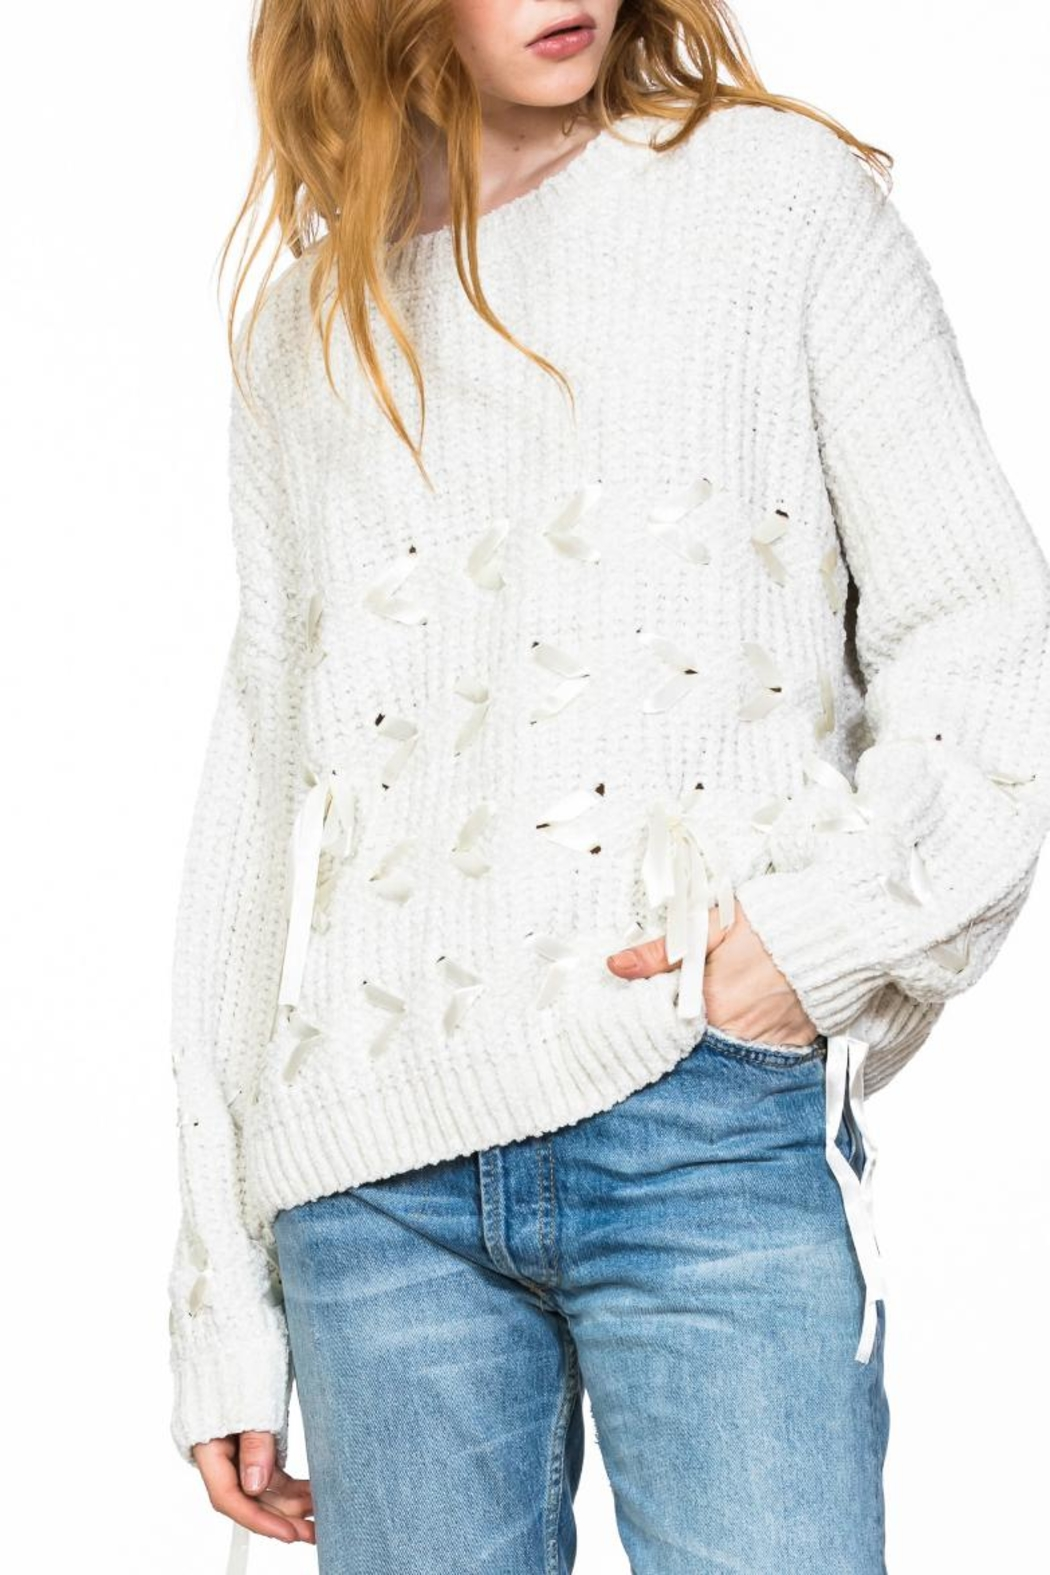 Ark & Co. Chenille Lace-Detailed Sweater - Main Image